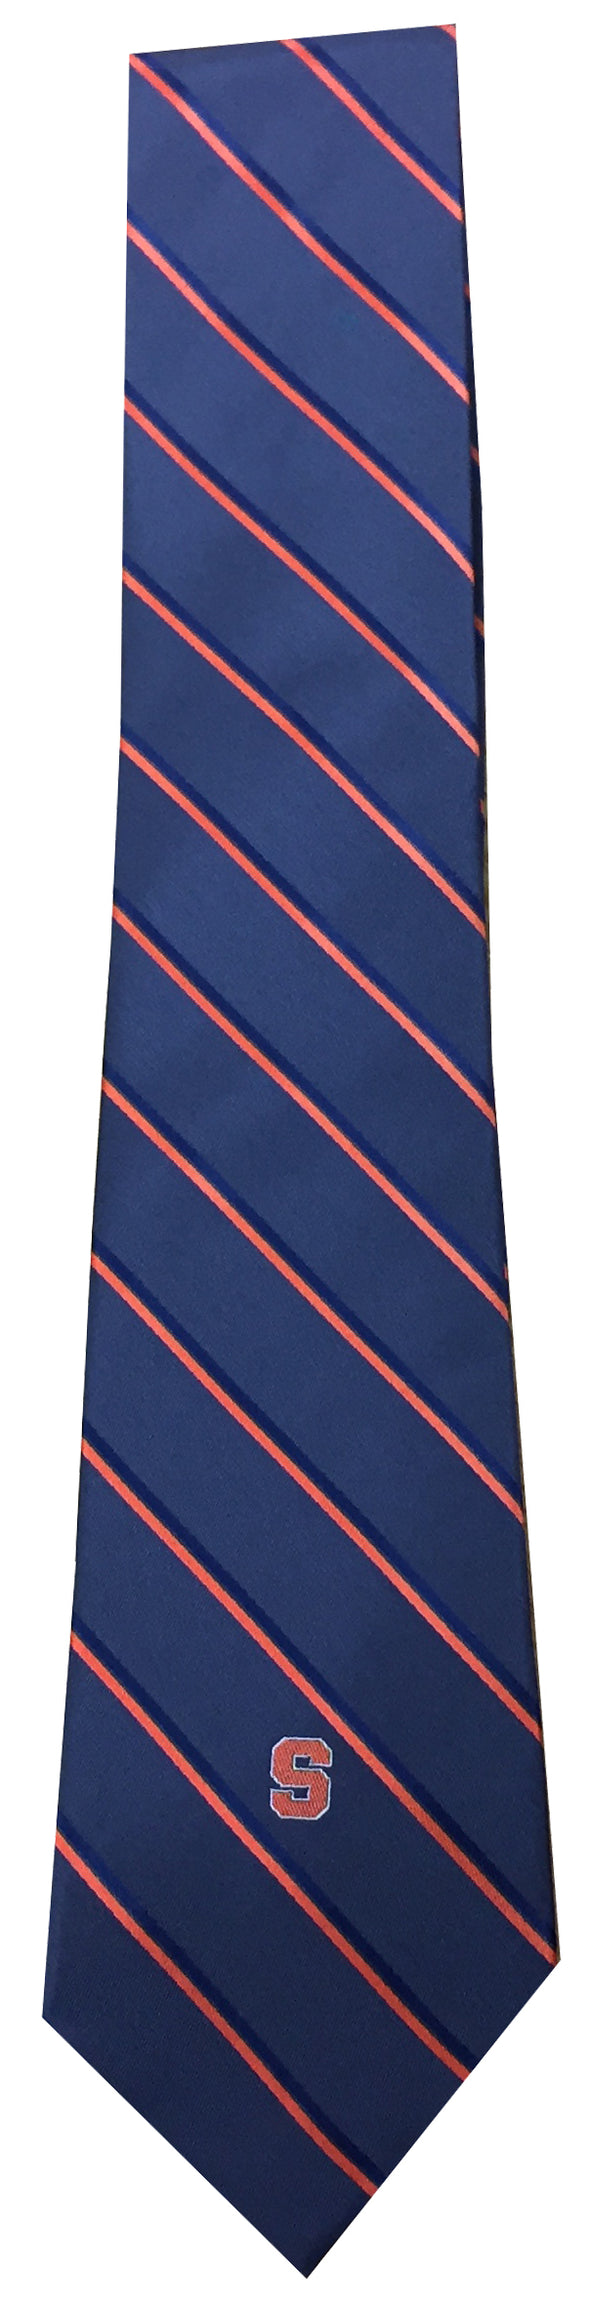 "Donegal Bay Grey Striped ""Block S"" Tie"